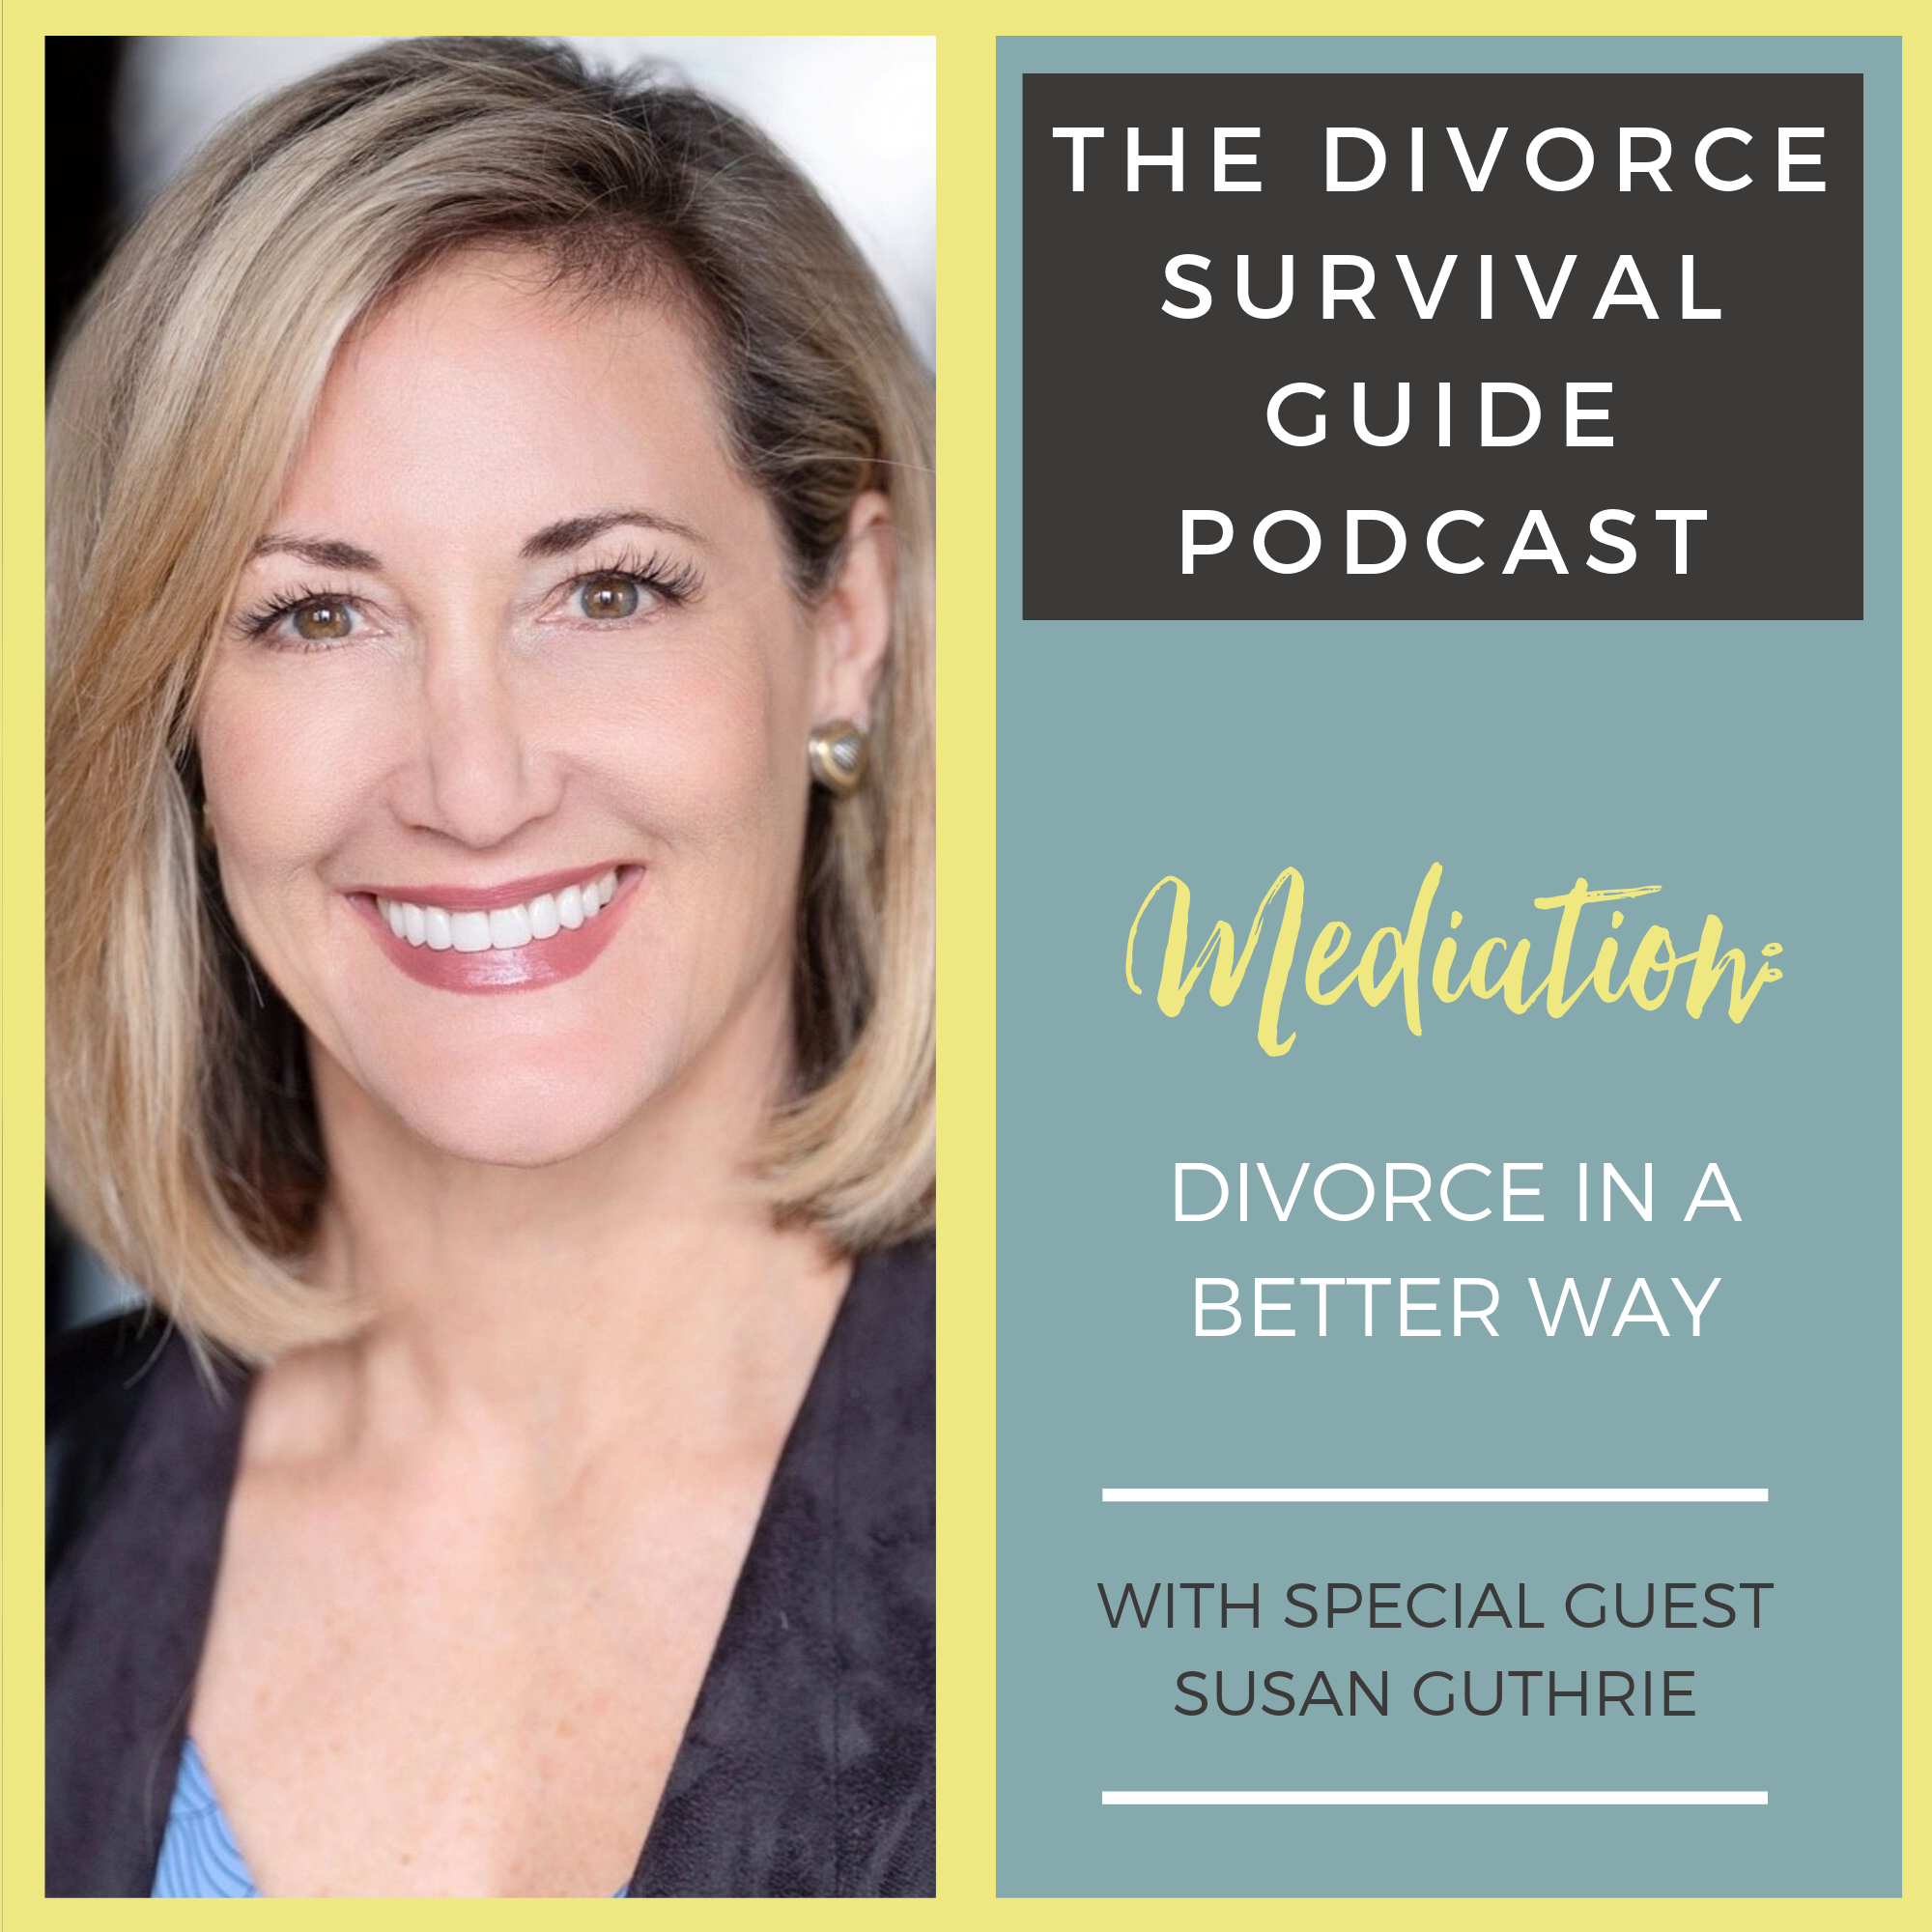 The Divorce Survival Guide Podcast - Mediation: Divorce in a Better Way with Susan Guthrie